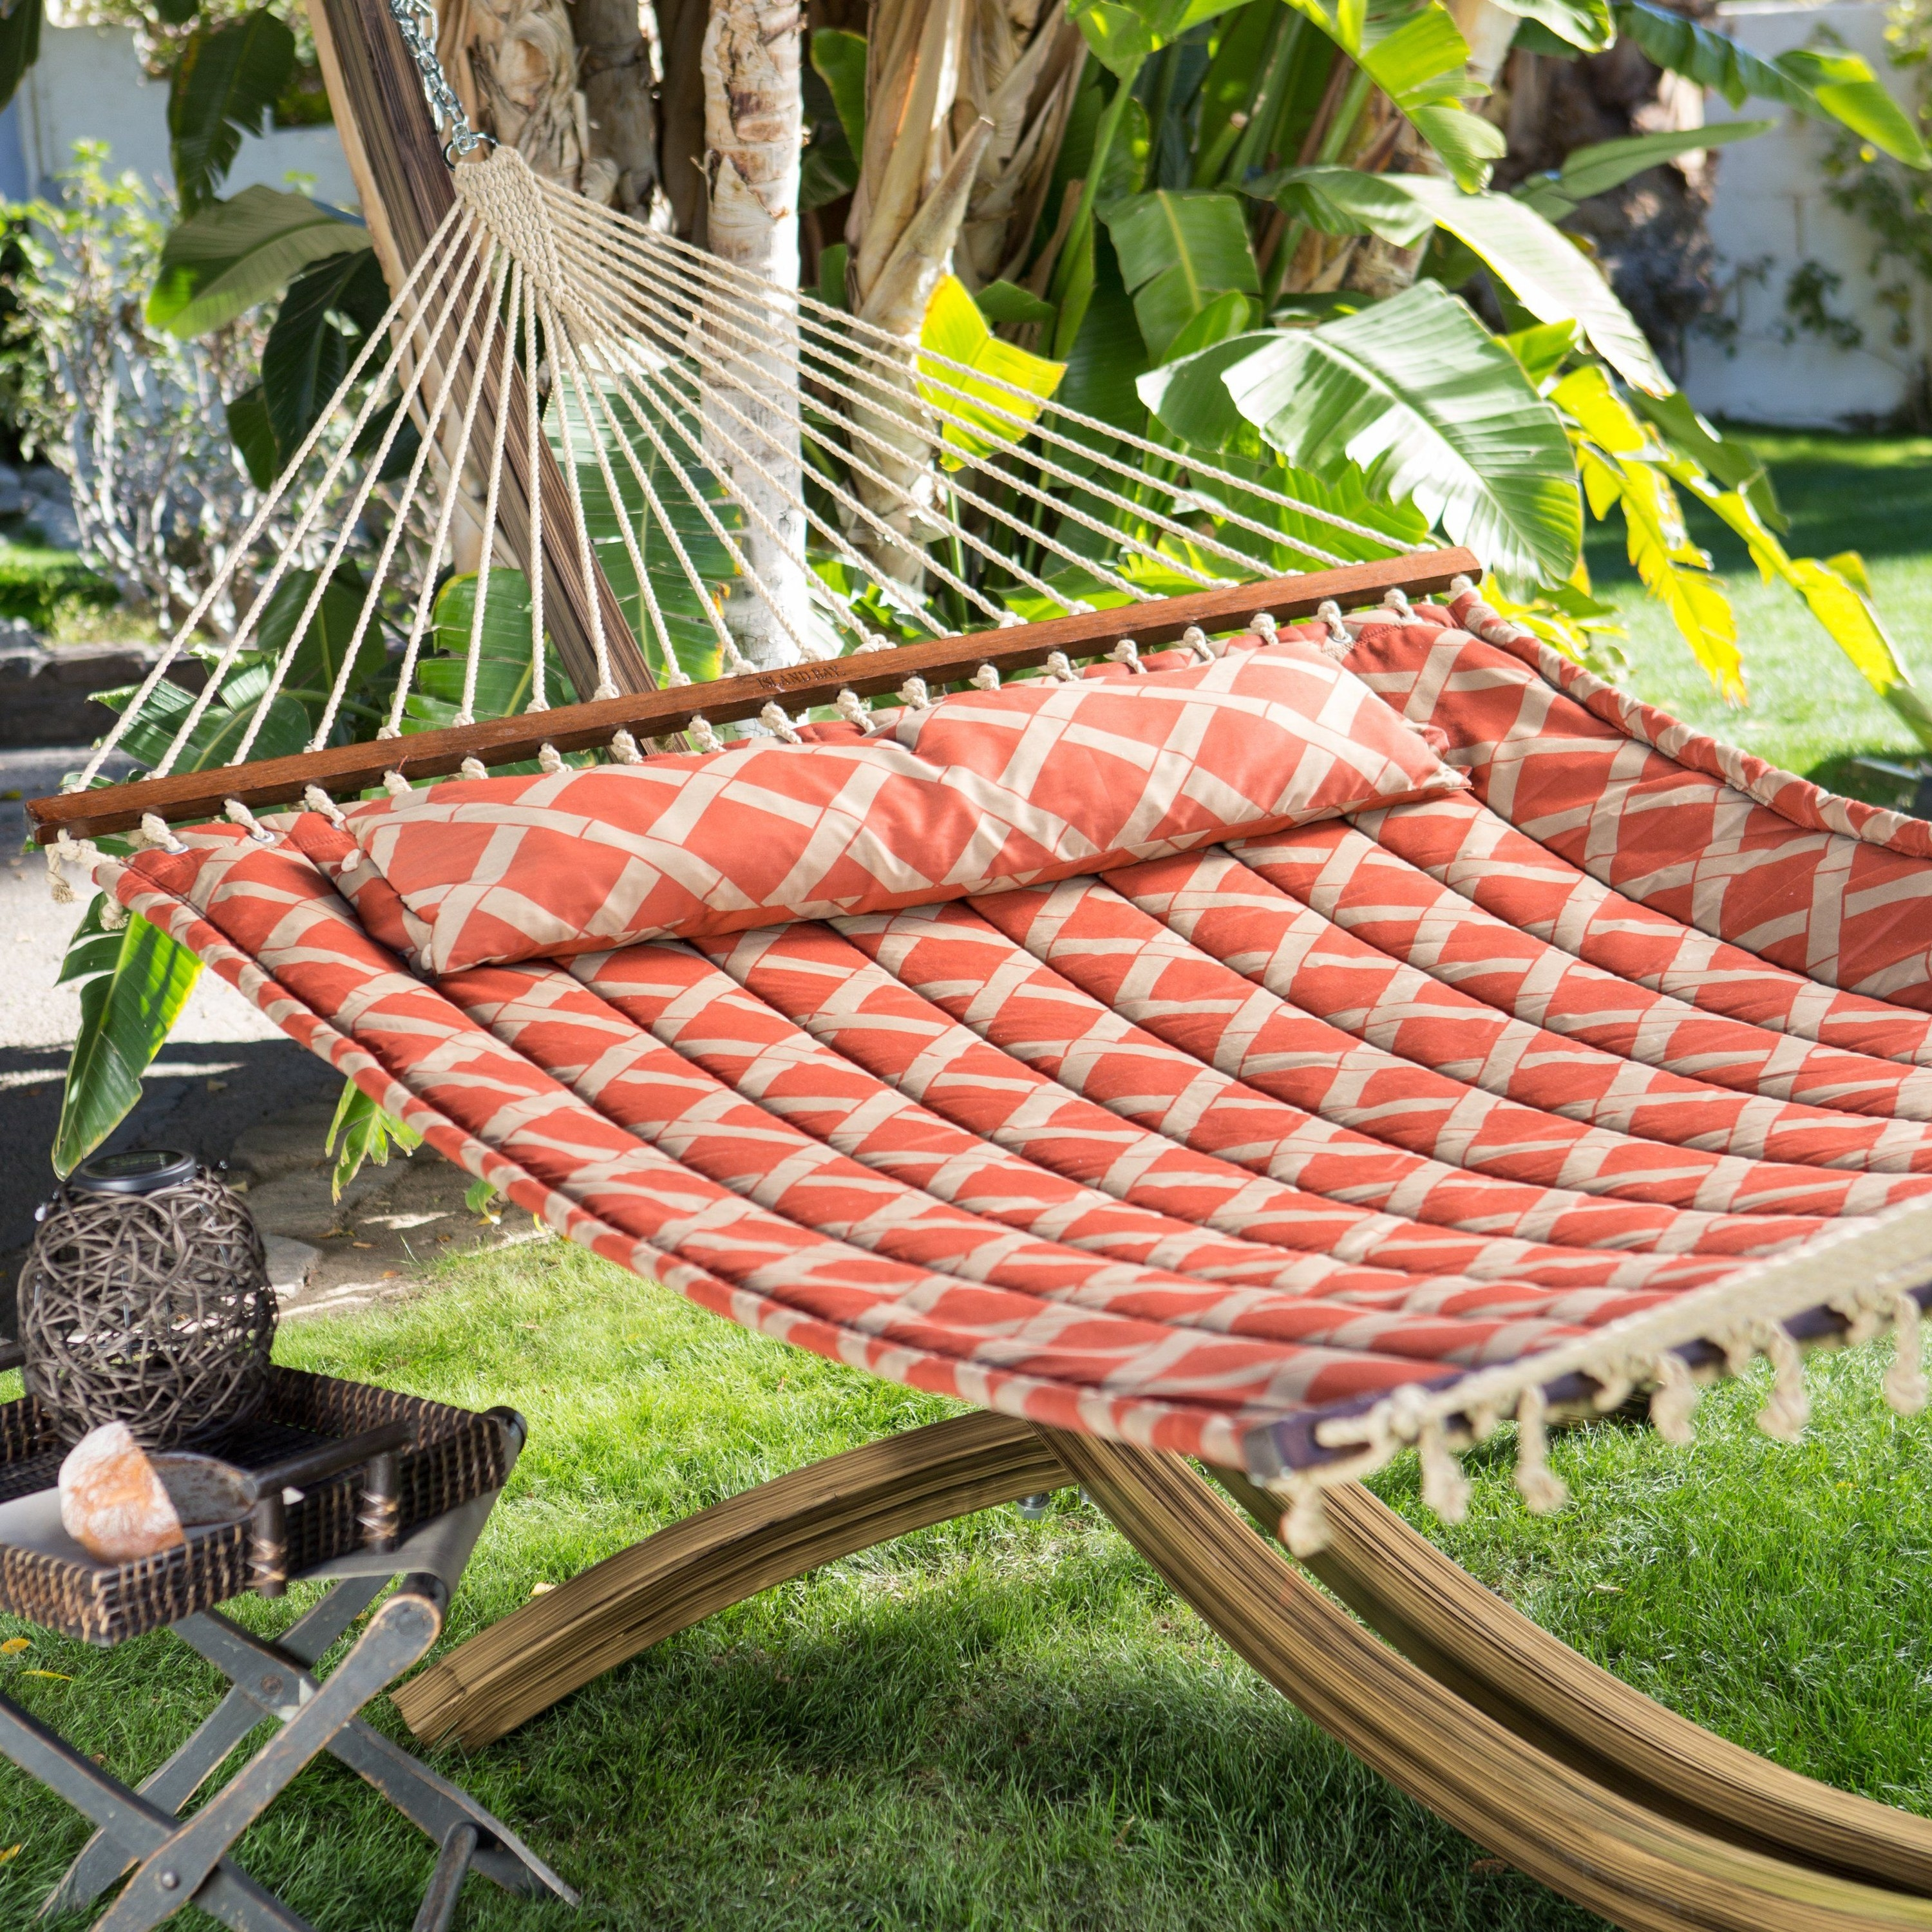 A quilted hammock wide enough for two people